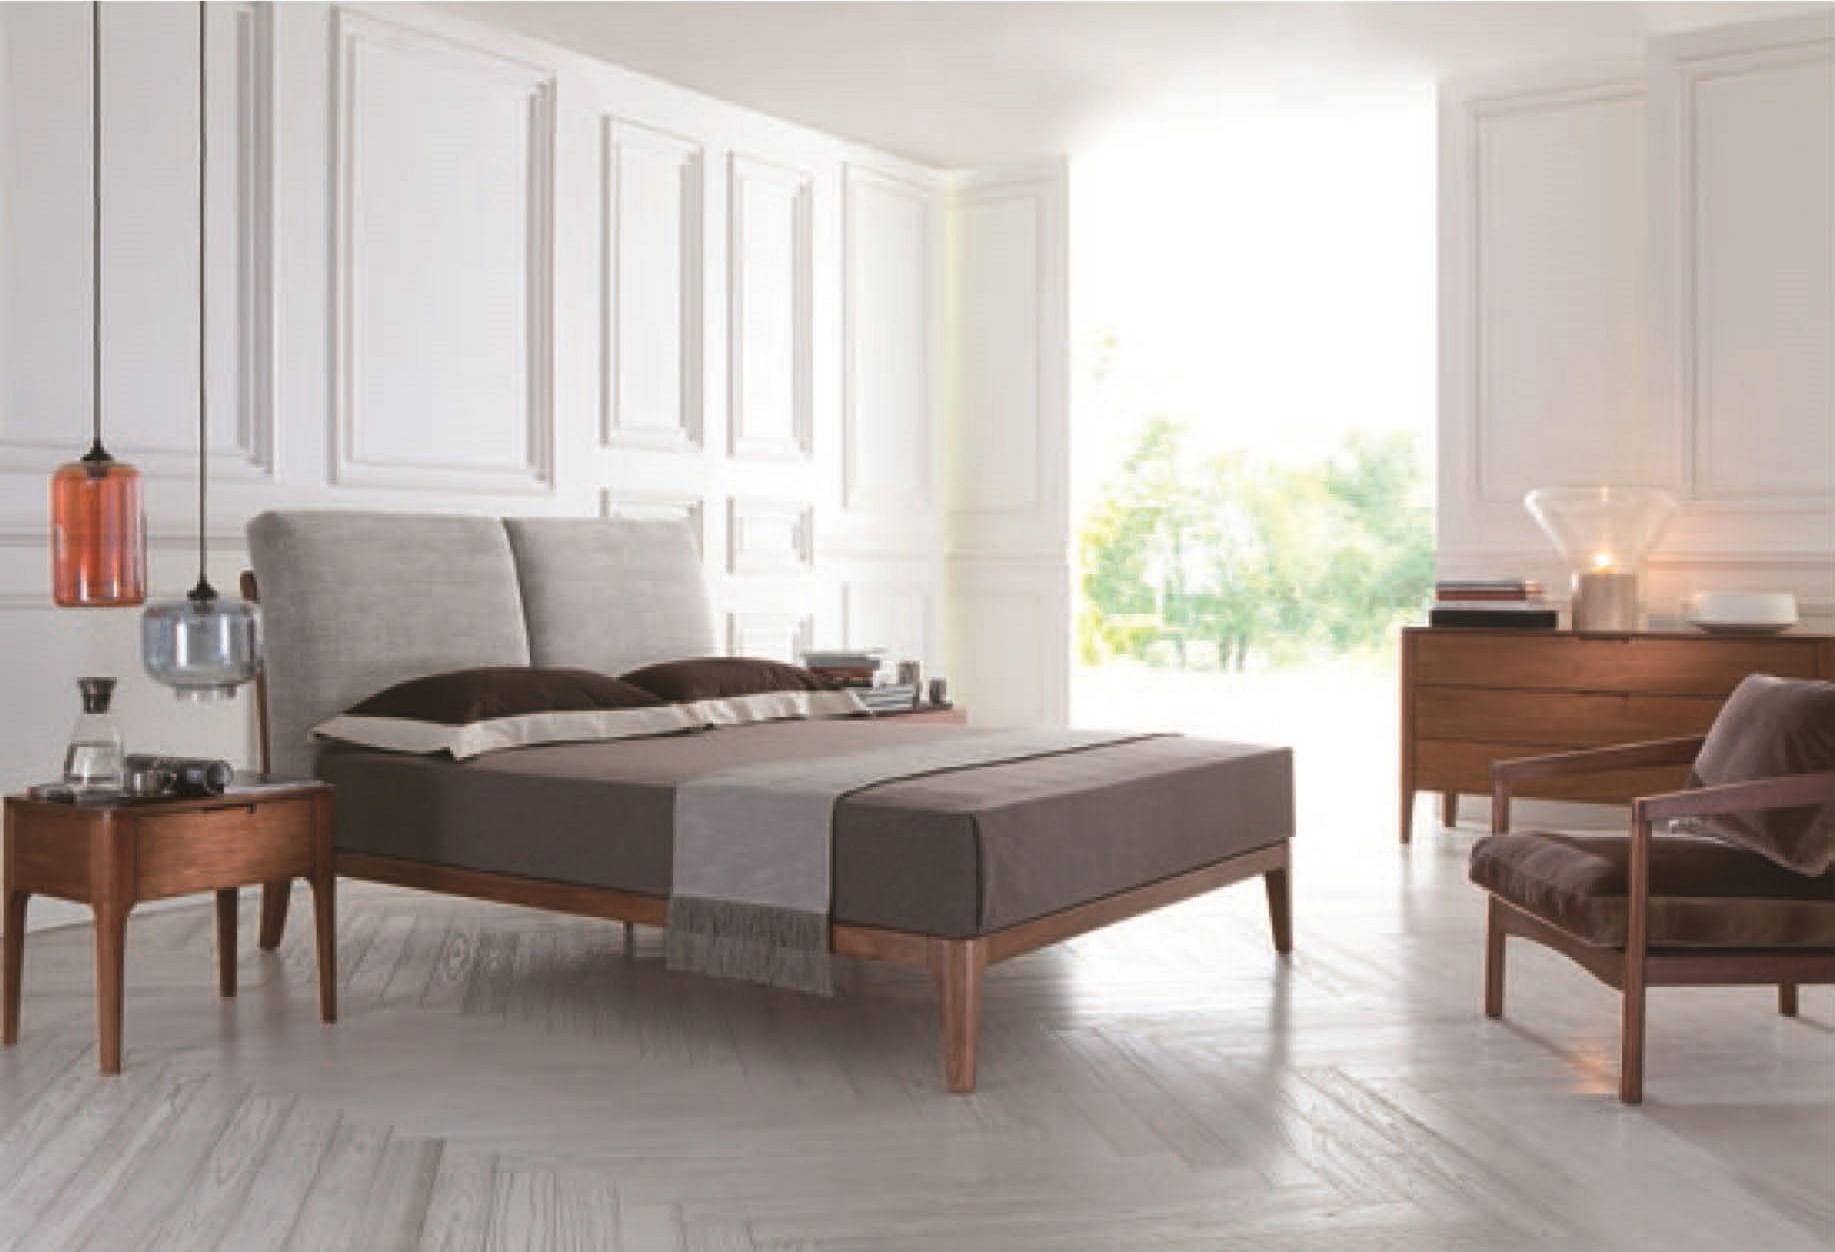 scandi home furnishings Mini case: scandi home furnishings, inc kaj rasmussen founded scandi home furnishings as a corporation during mid-2002 sales during the first full year (2003.